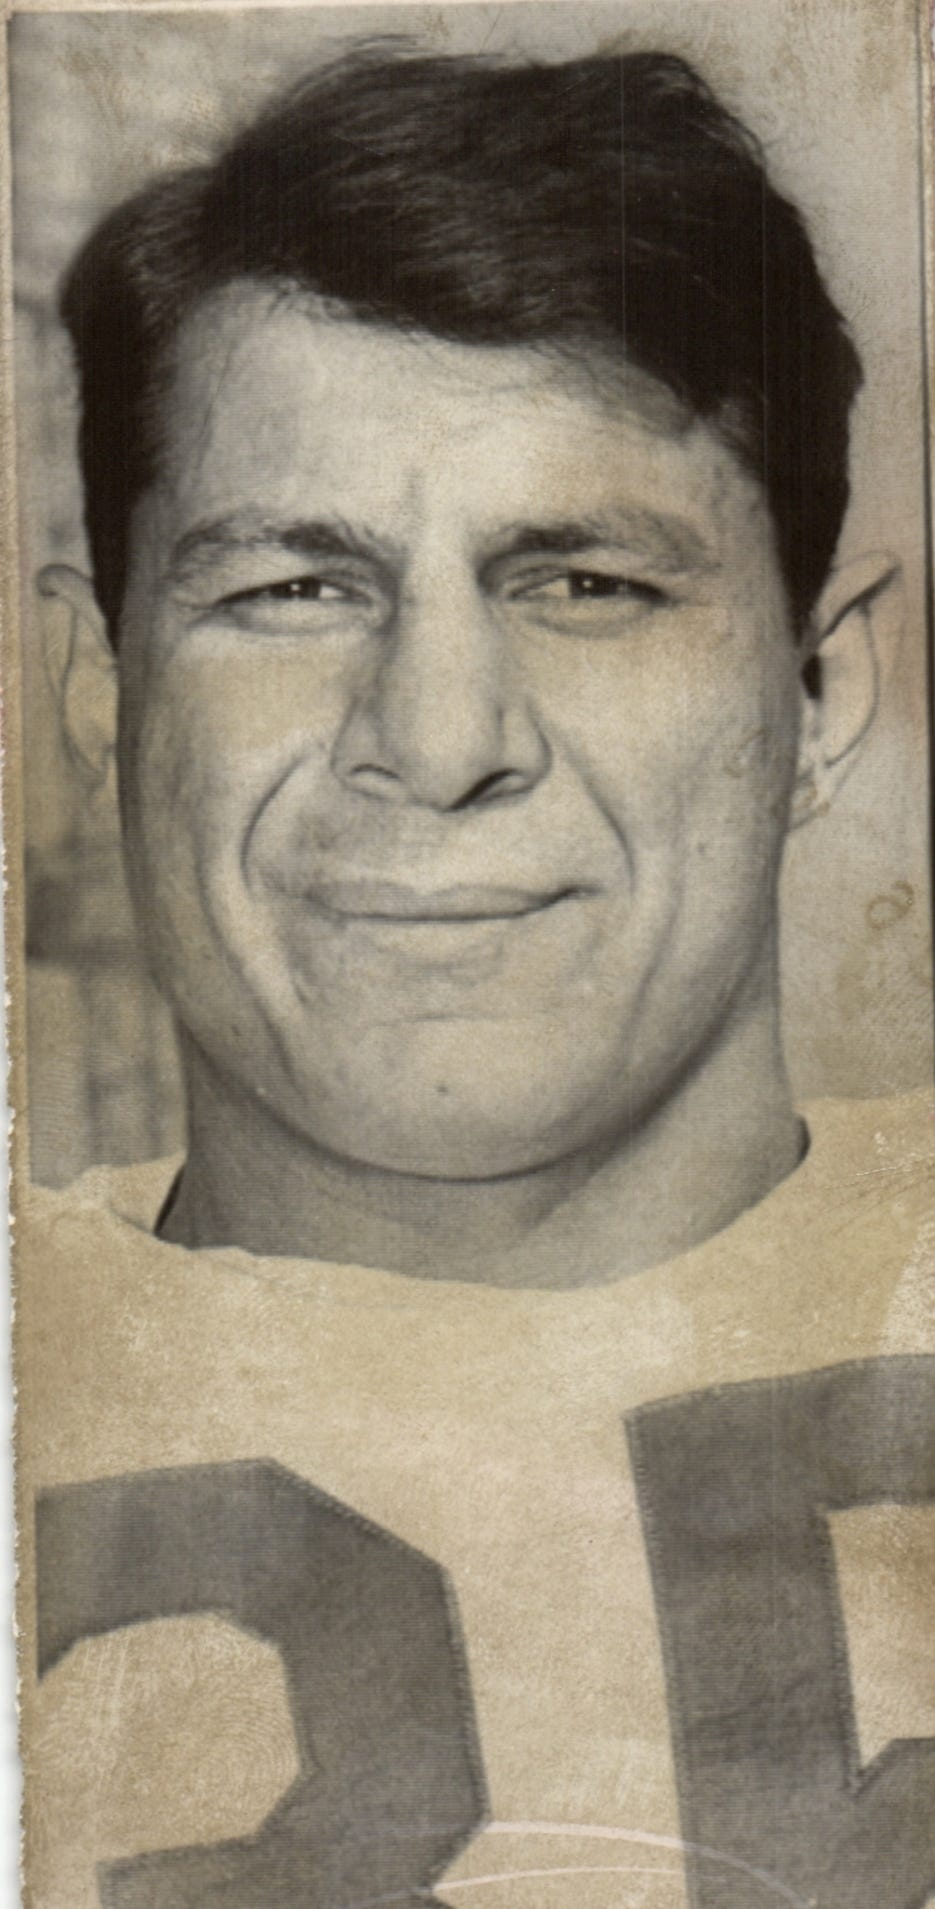 Eagles end Pete Pihos led the NFL in receptions from 1953-55, but never caught more than 63 passes in a season.